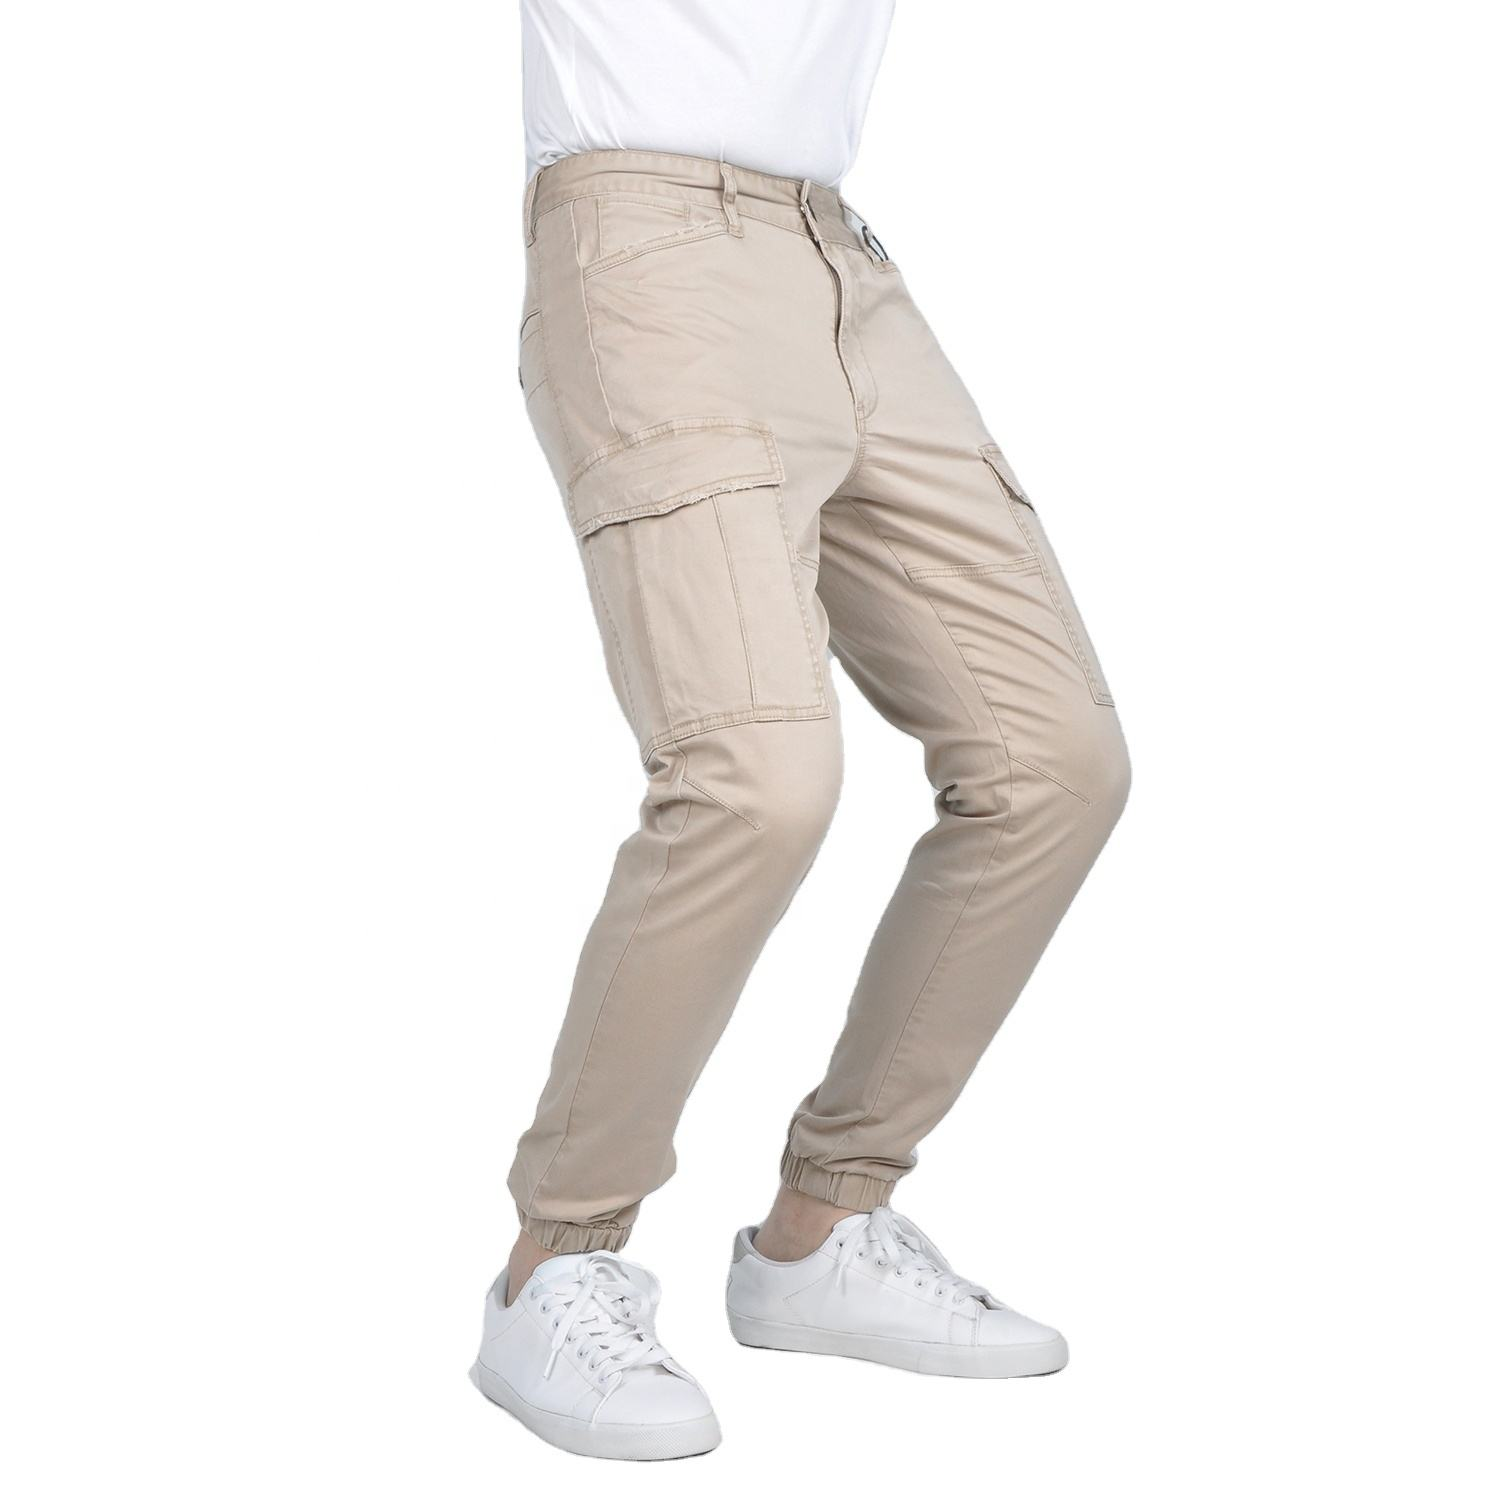 Decoration stitching patch cargo six pocket side winter business pant suit main stock india cheap chinos trousers in china